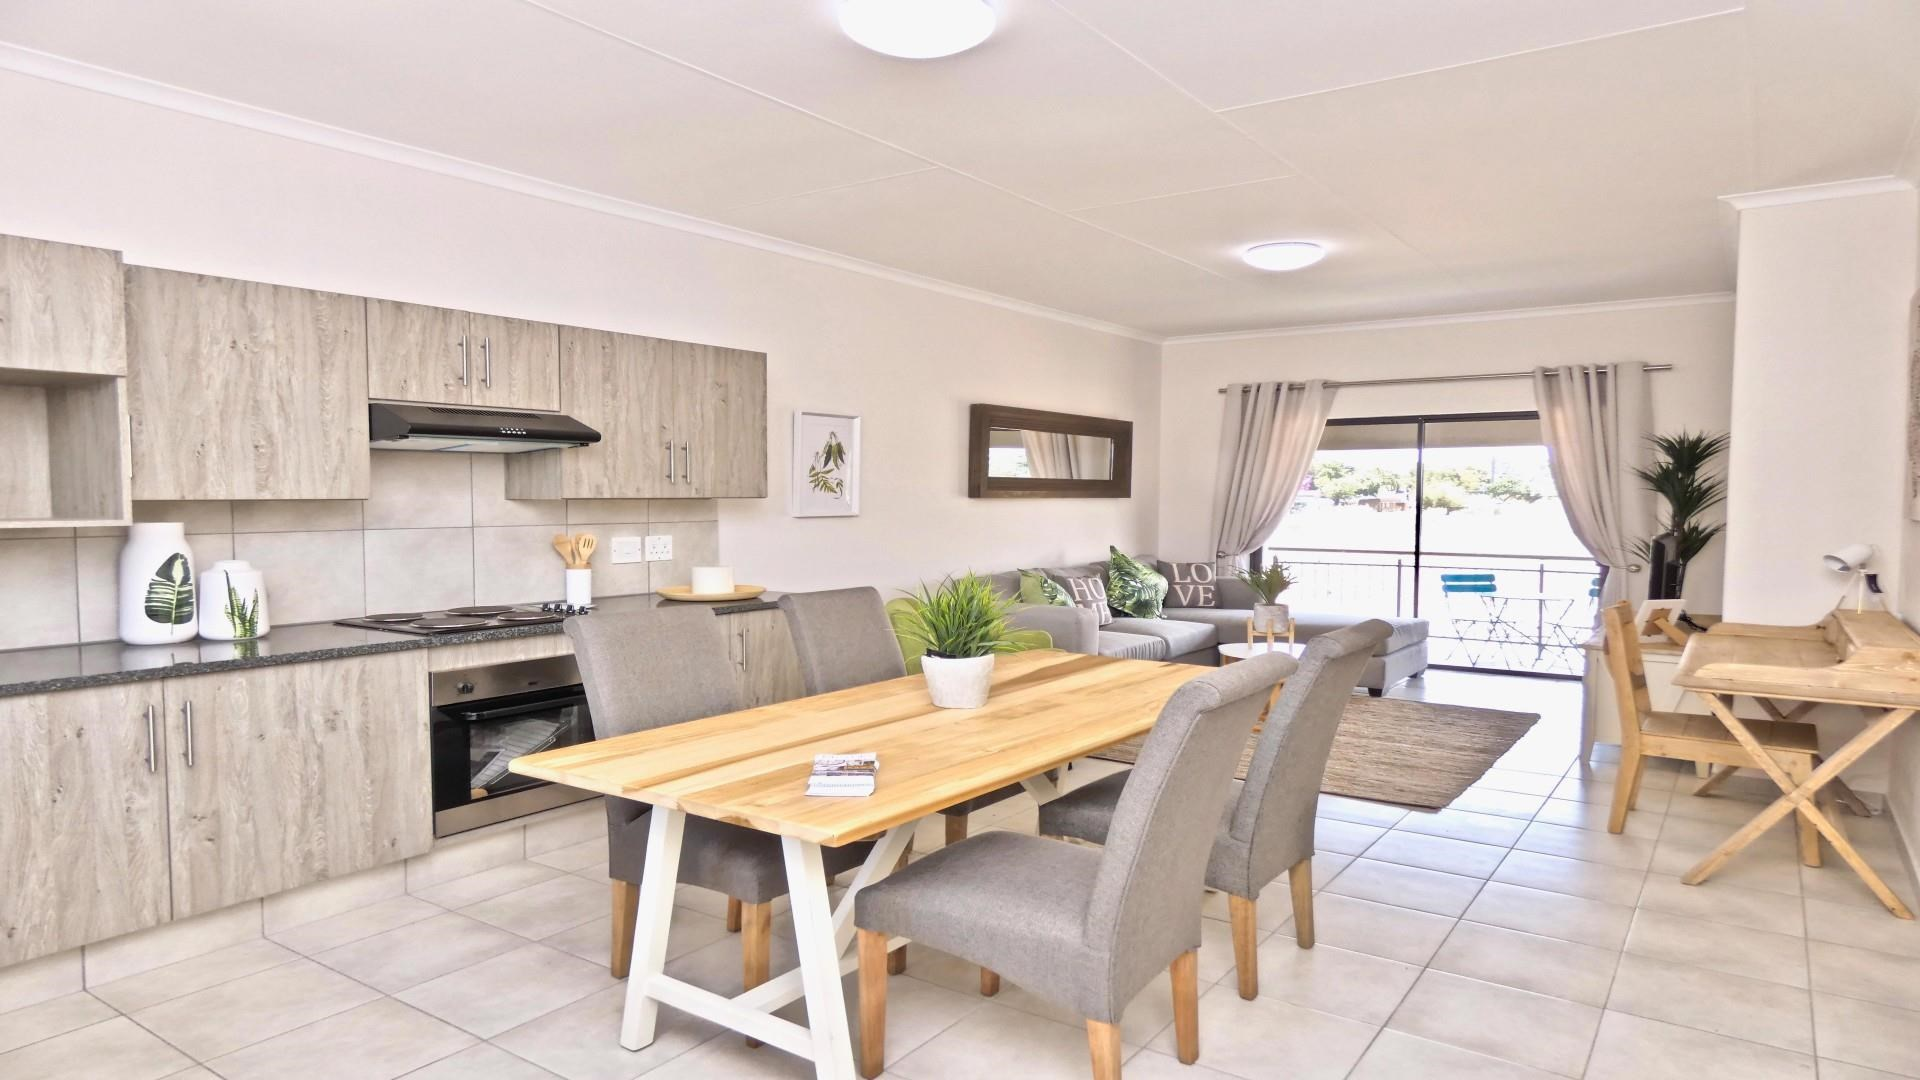 2 Bedroom Simplex for Sale in Brentwood Park